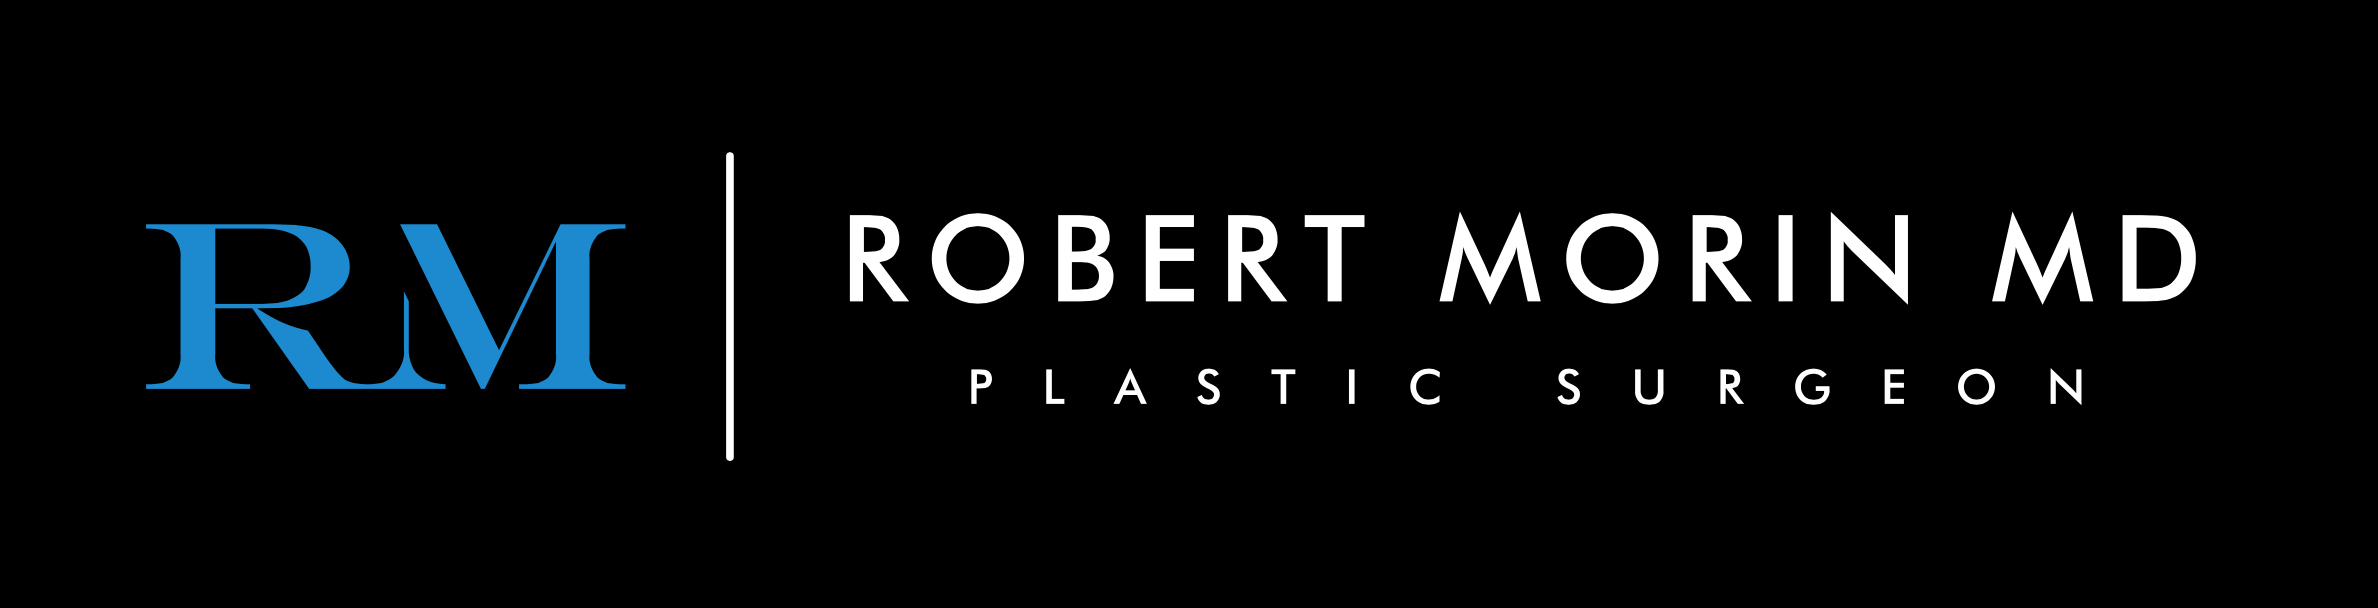 Robert Morin MD Plastic Surgeon